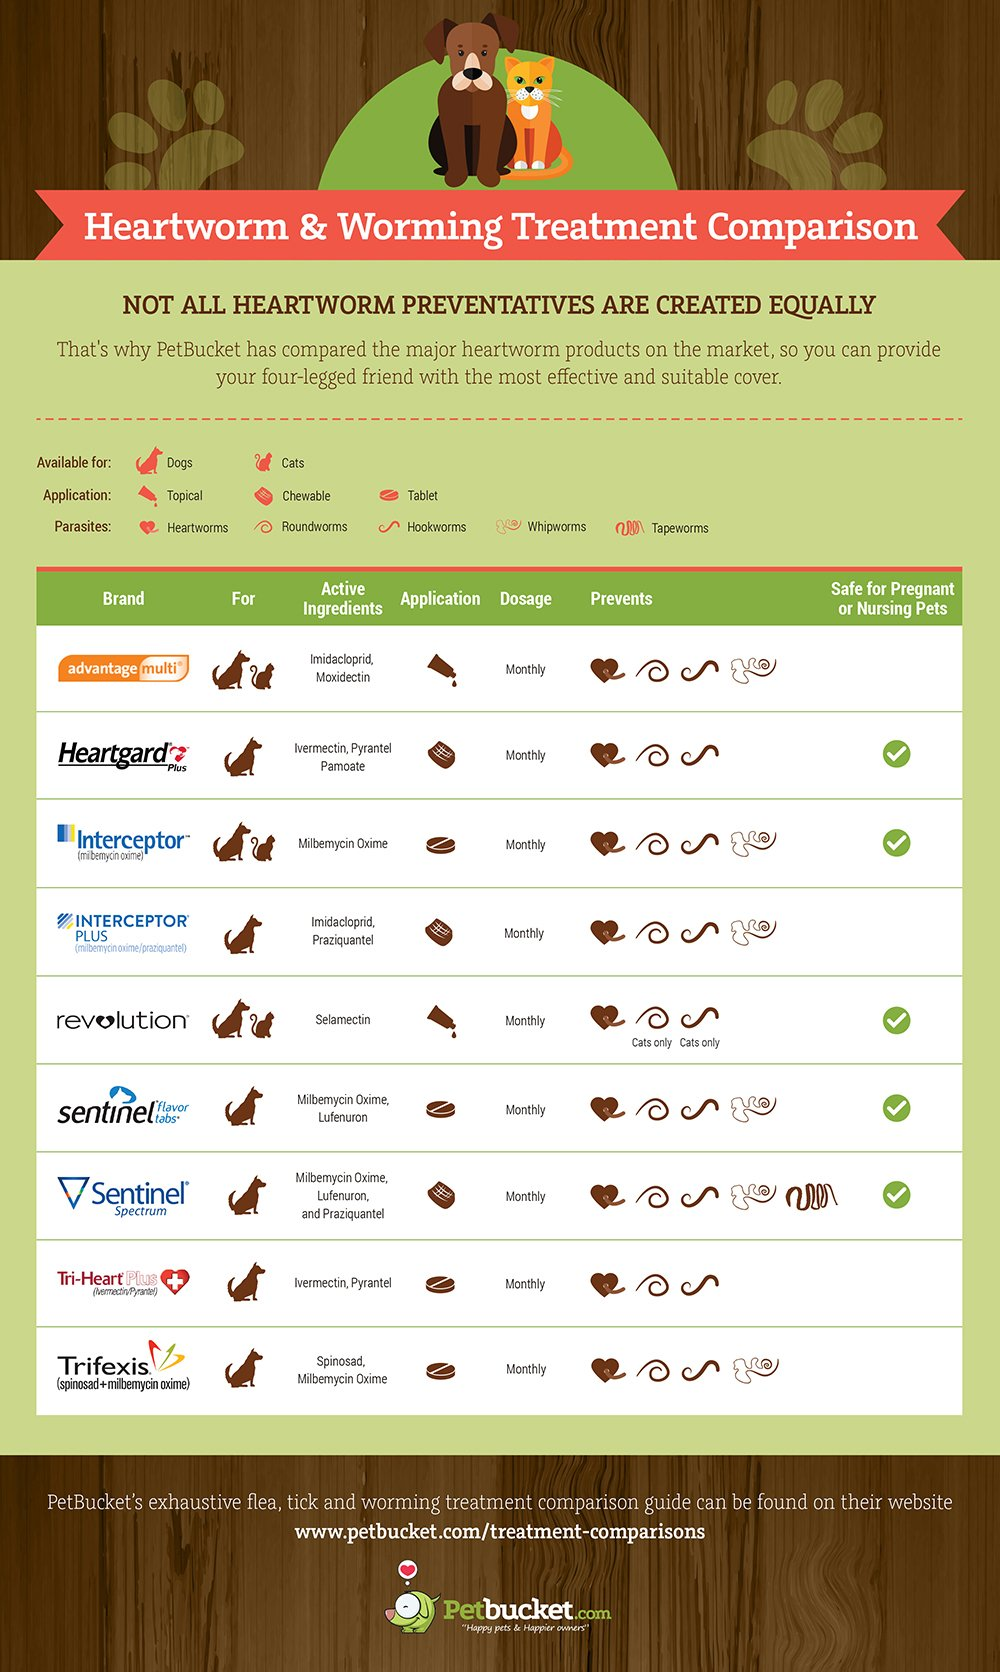 heartworm & worming treatment comparison infographic